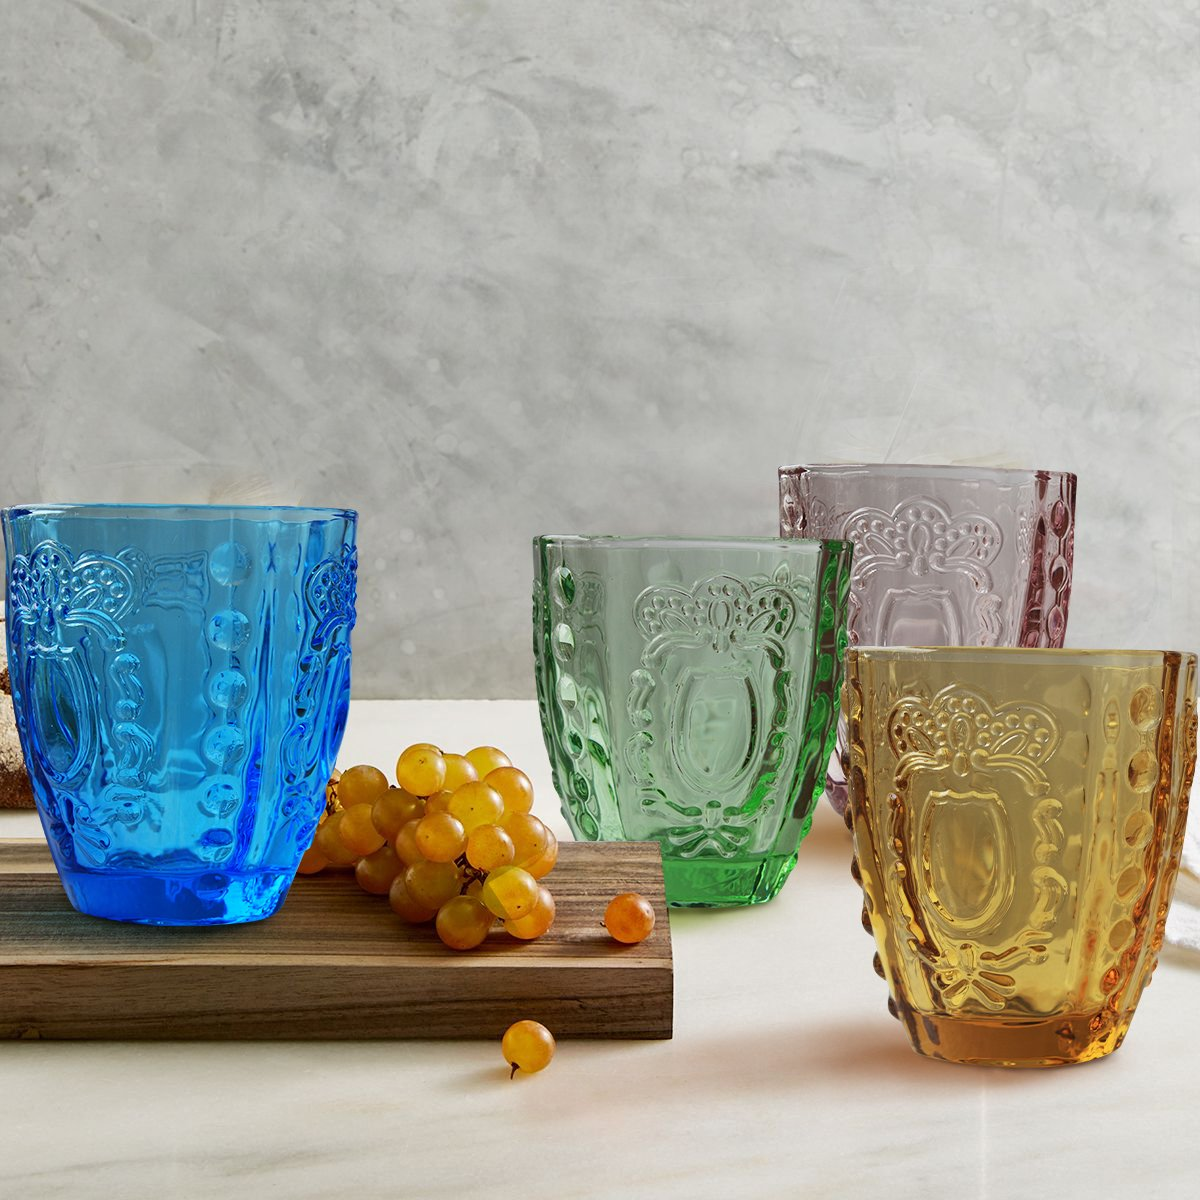 Drinking Glasses 4Pcs, Colored Premium Heavy Glassware, 12oz Multicolor Glass Tumbler Gift for